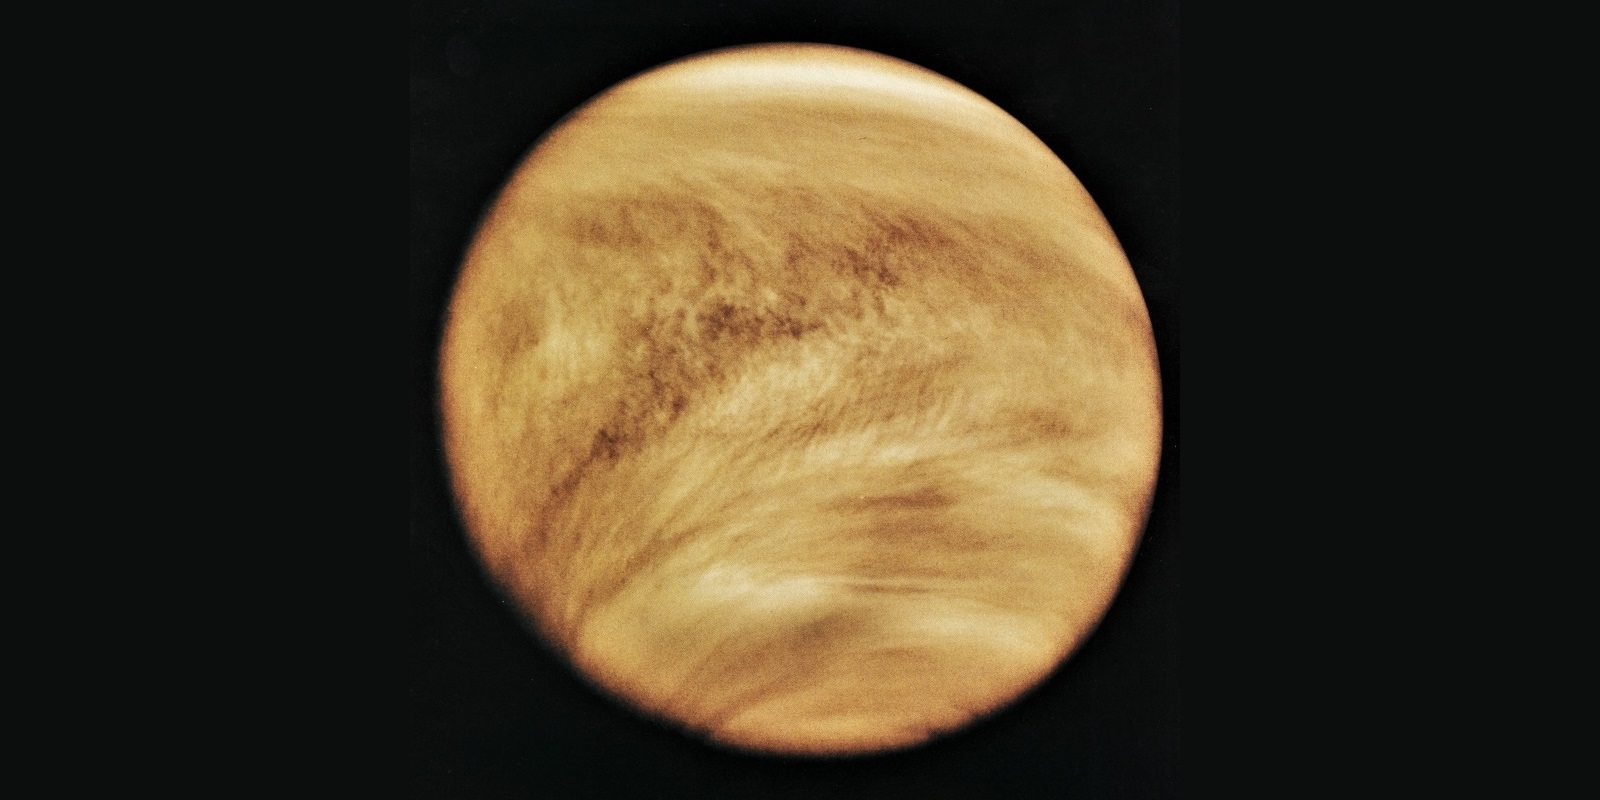 Venus in UV light as seen by Pioneer